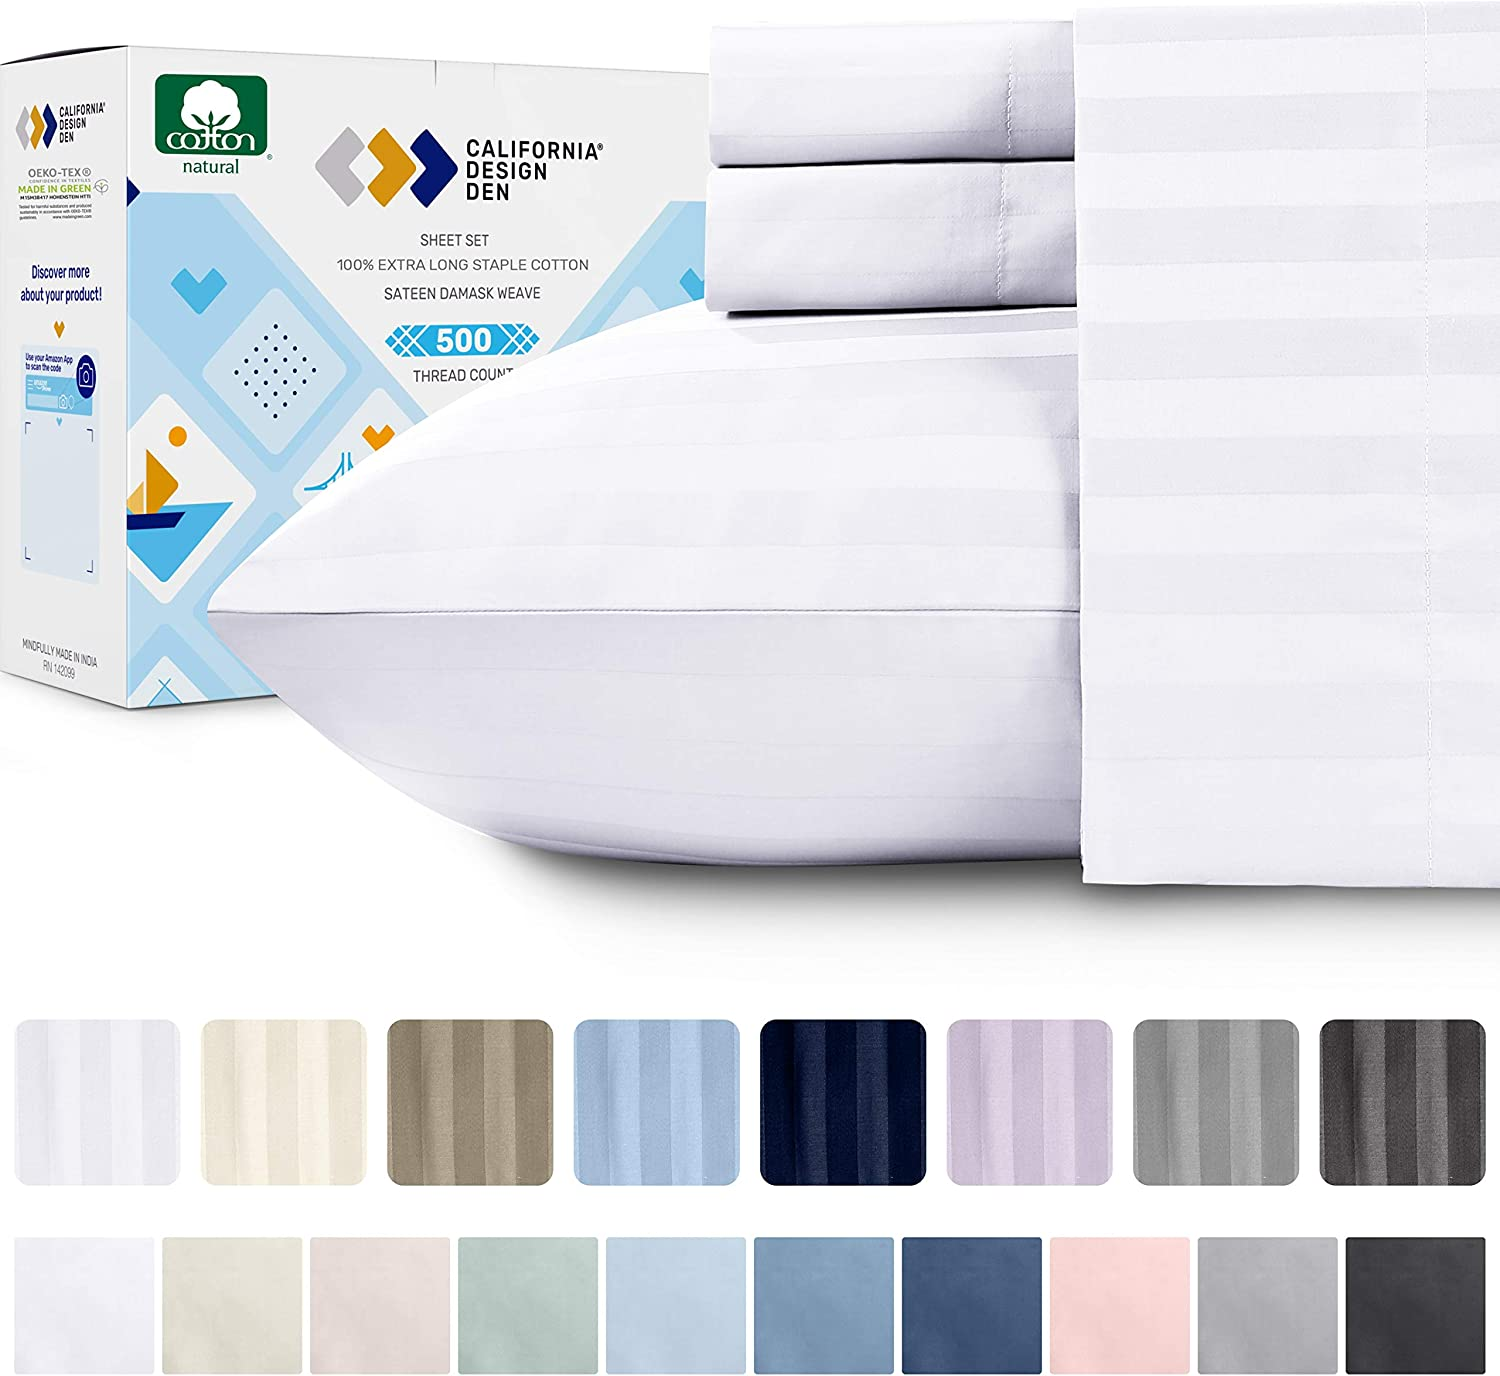 500 Thread Count 100/% Cotton Sheet Set Long Staple Combed Pure Natural Cotton Bedsheet White, Full 4 Pieces Sheet Set Soft /& Silky Sateen Weave